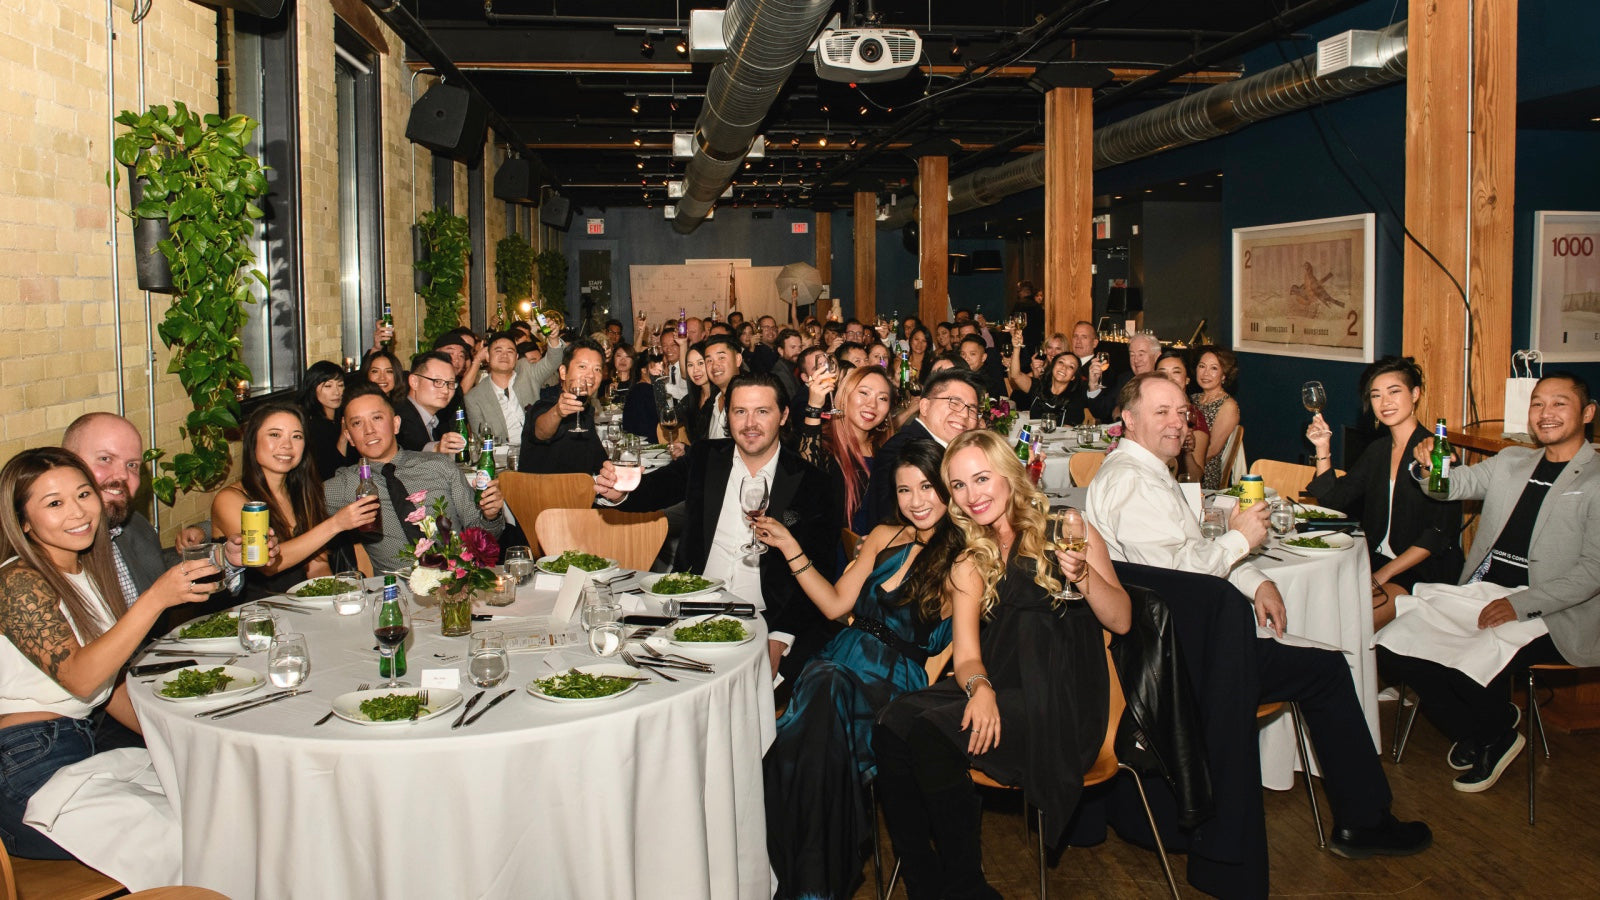 The 2019 BREAK FREE Fundraiser Gala